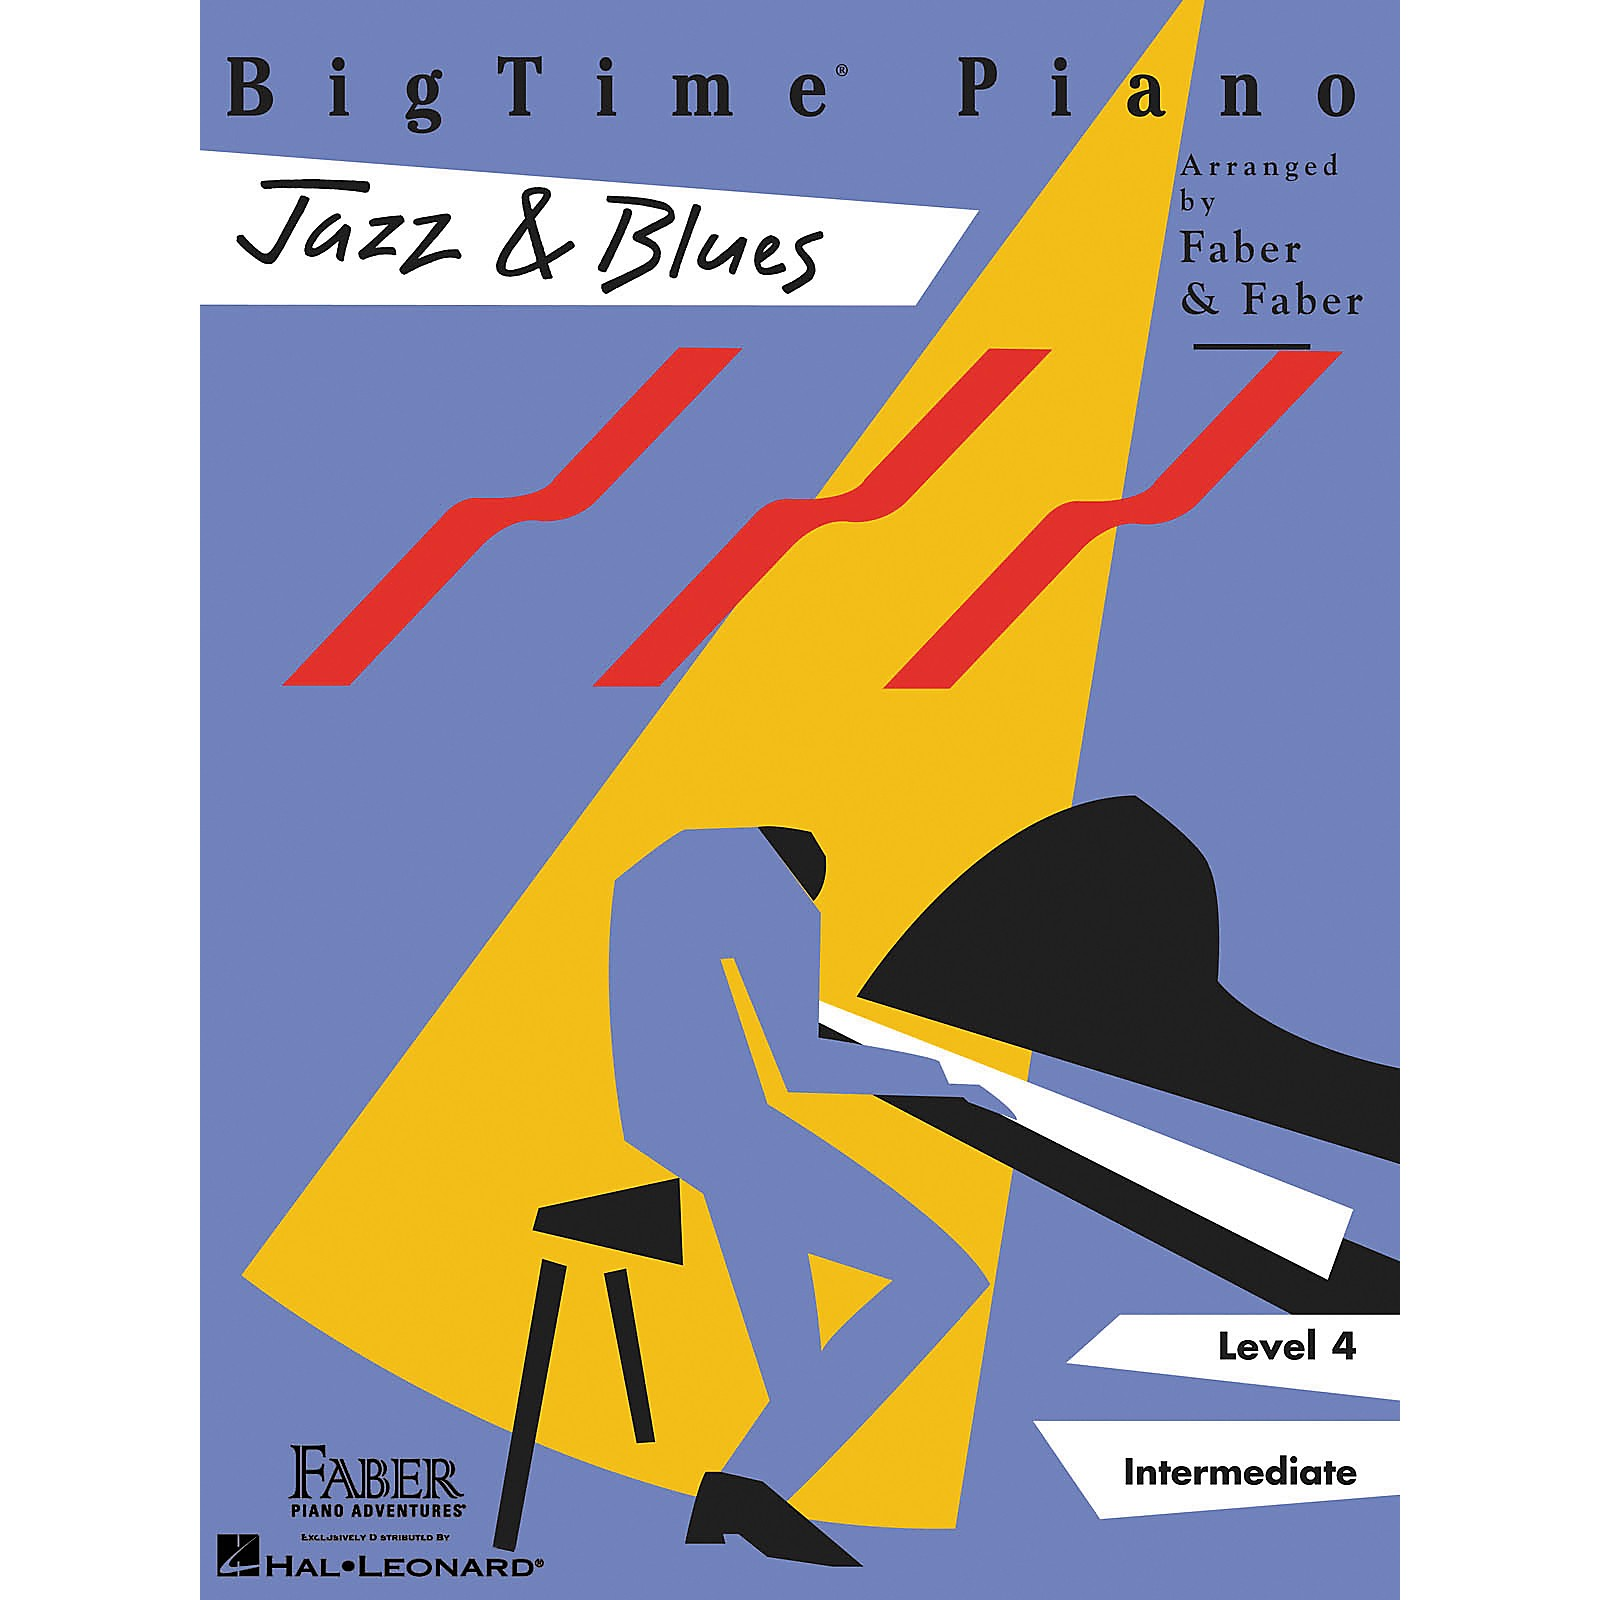 Faber Piano Adventures Bigtime Jazz & Blues L4